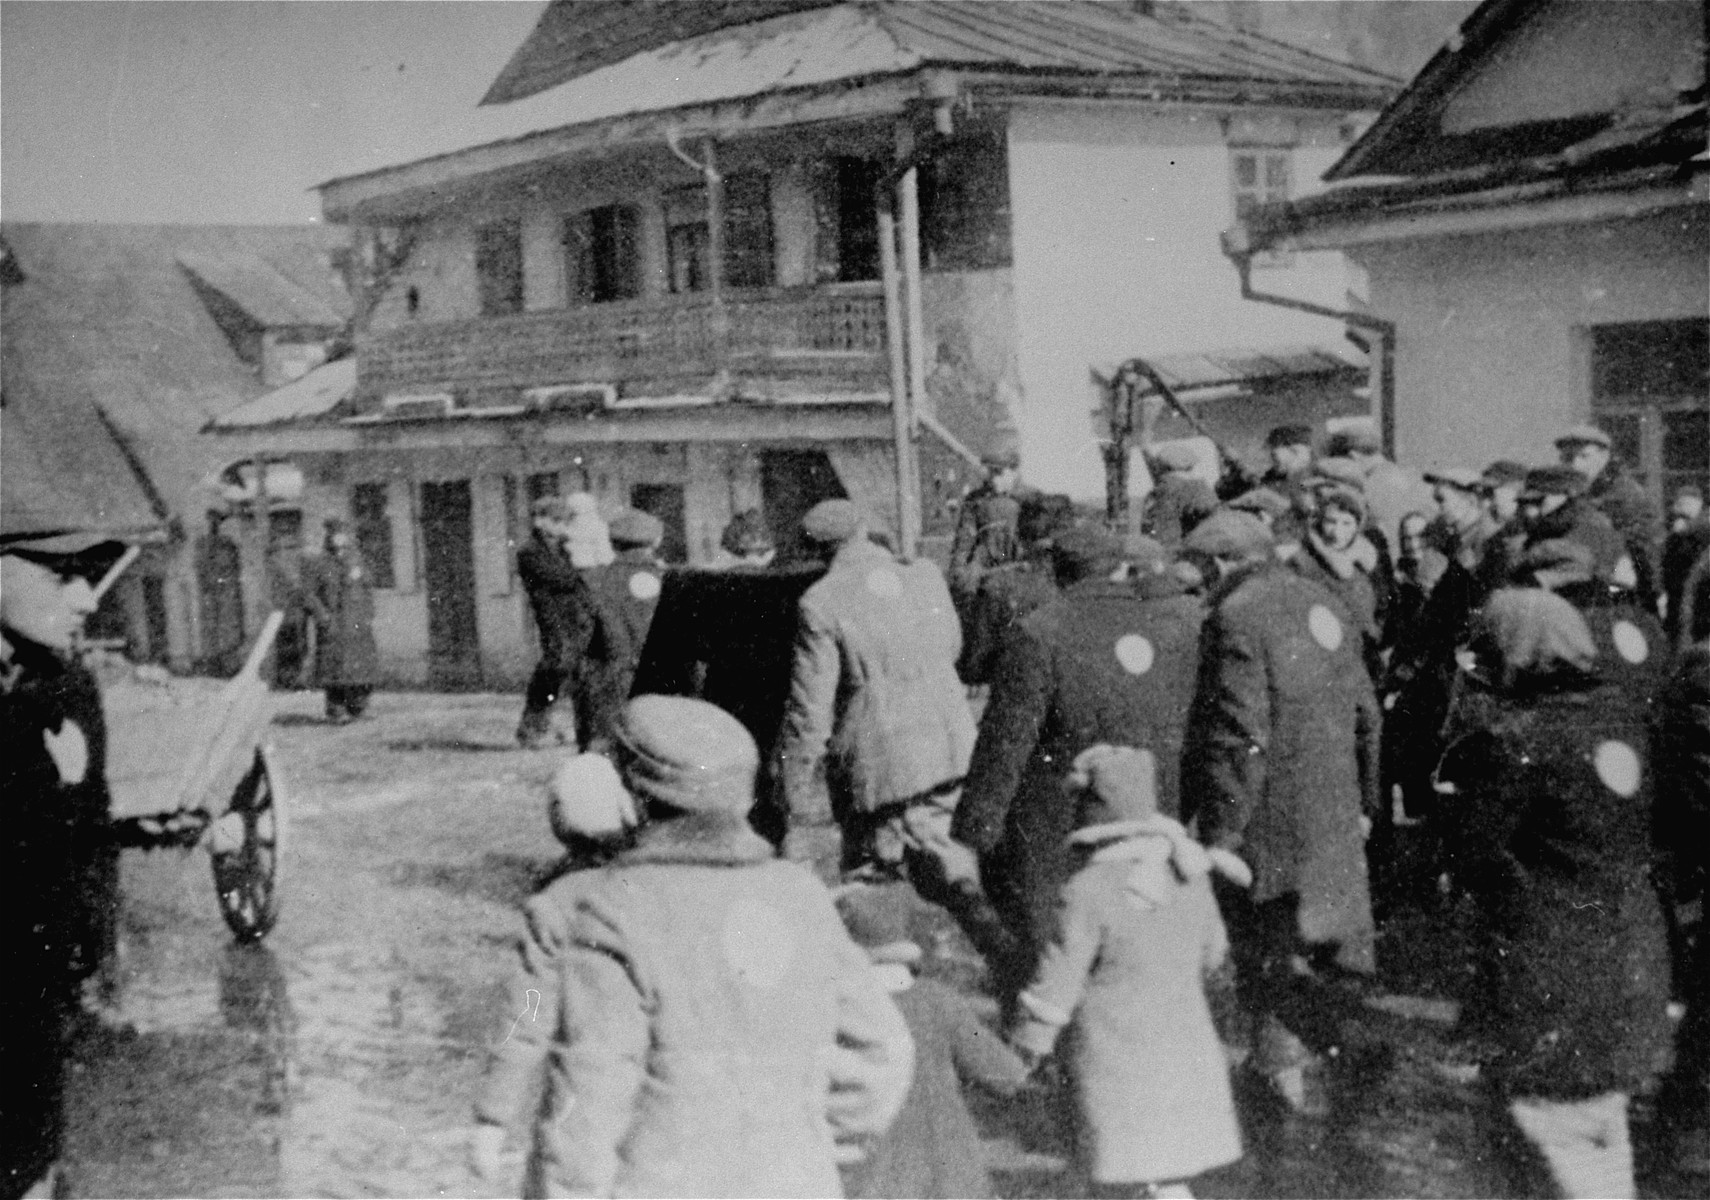 Jews wearing circular badges walk through town during a deportation action from the Krzemieniec ghetto.